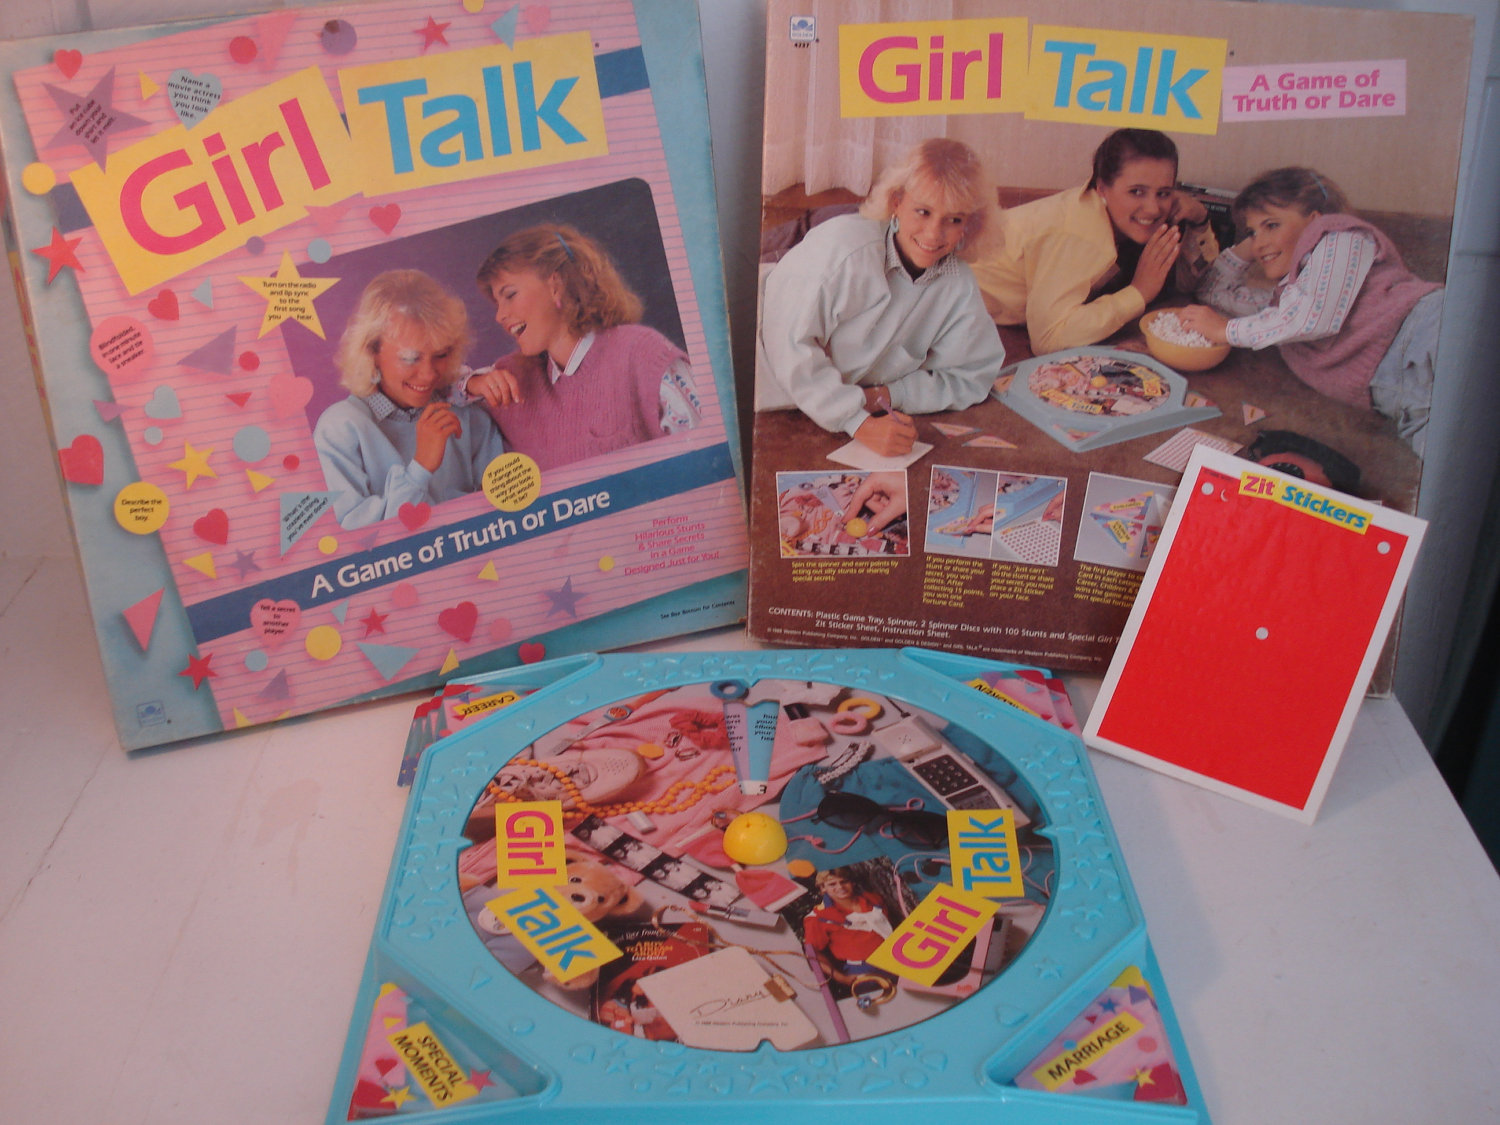 '90s board games that taught me everything about girl friendship